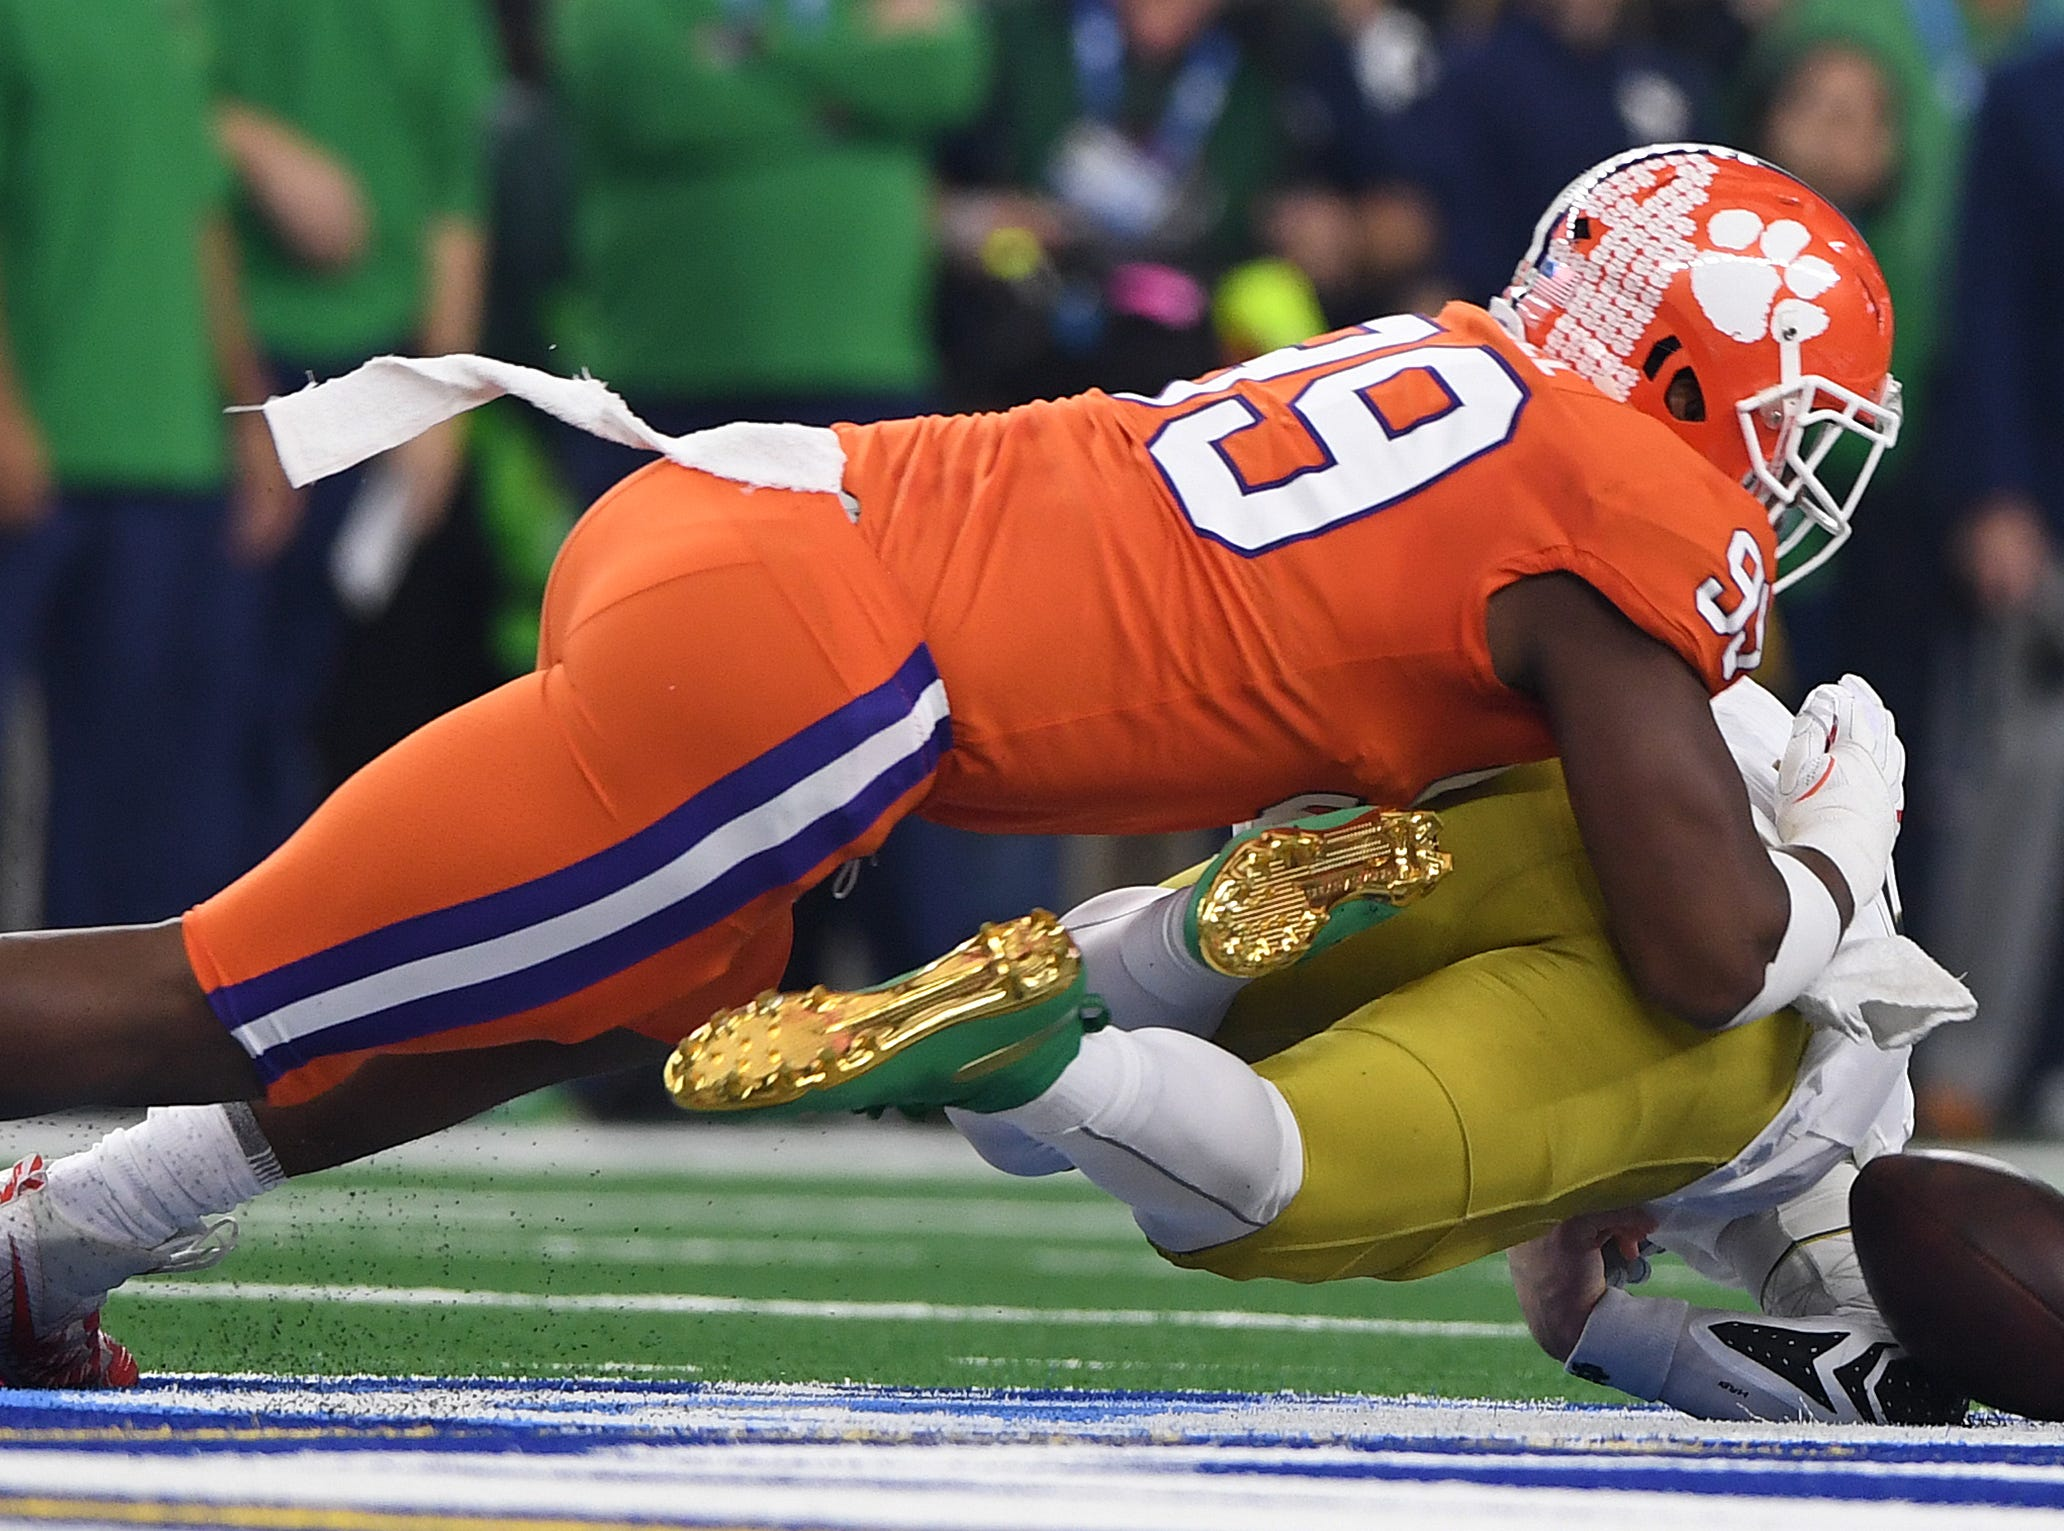 Clemson defensive lineman Clelin Ferrell (99) brings down Notre Dame quarterback Ian Book (12) during the 1st quarter of the Goodyear Cotton Bowl at AT&T stadium in Arlington, TX Saturday, December 29, 2018.